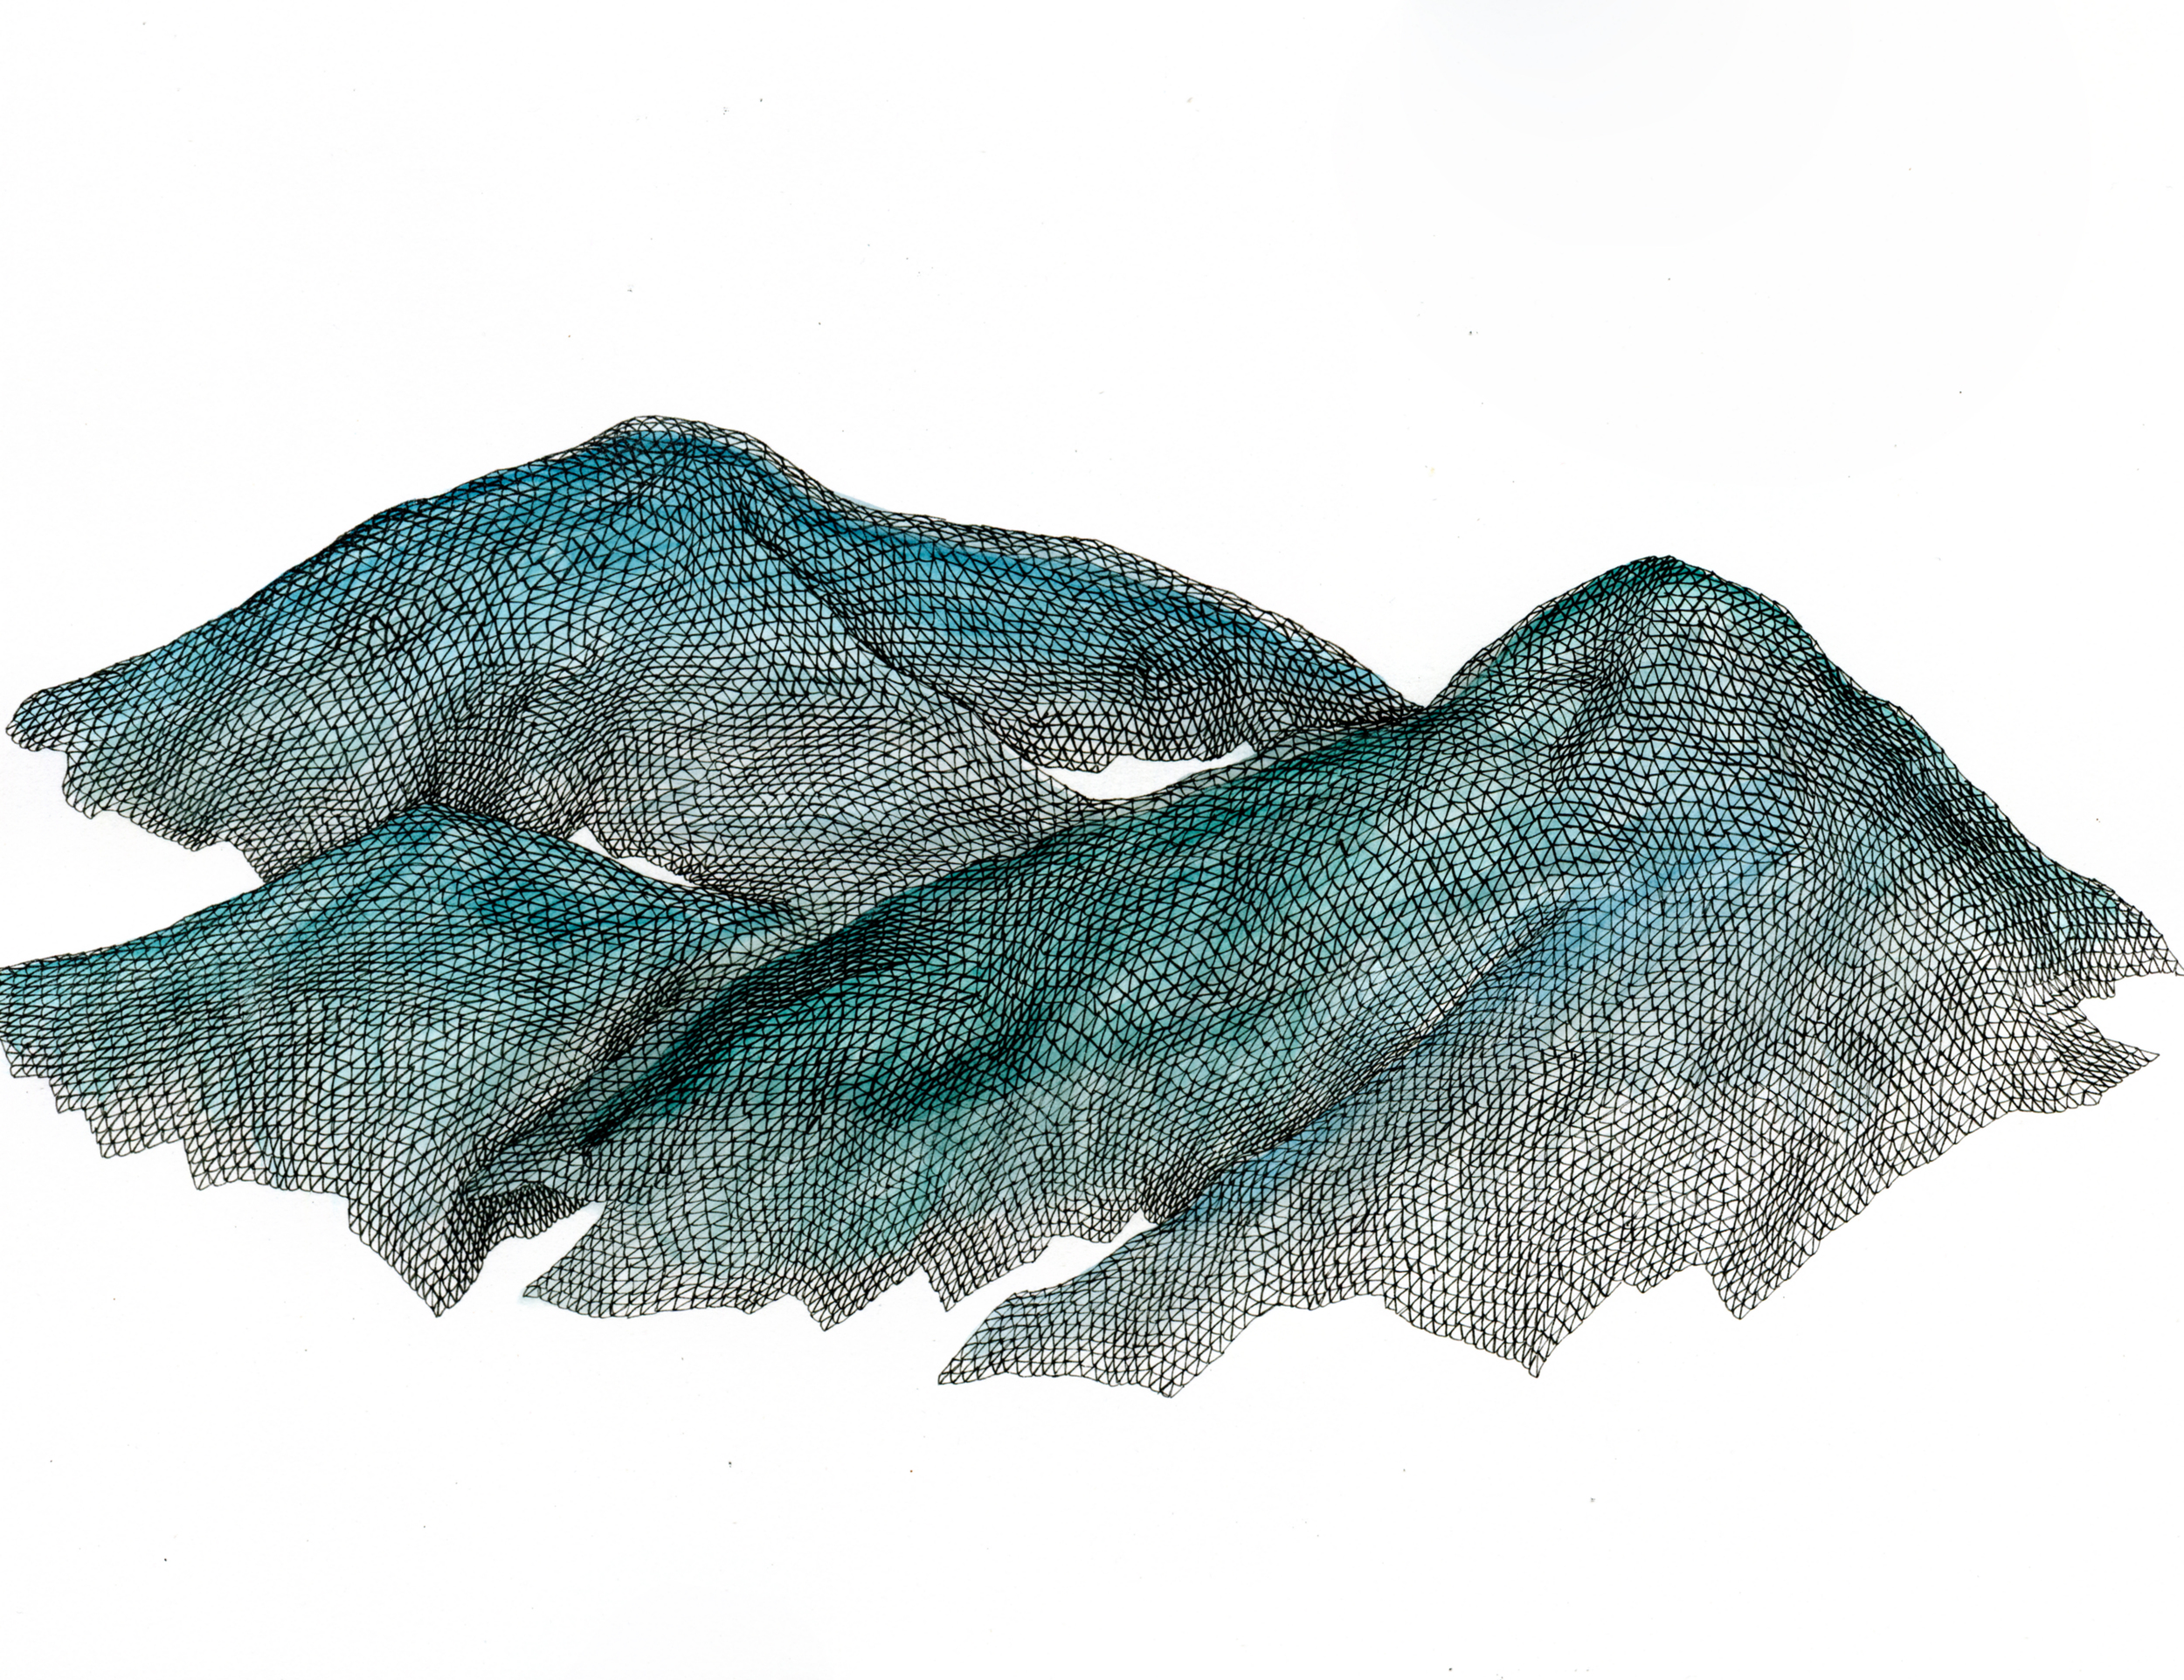 Topographical Peaks